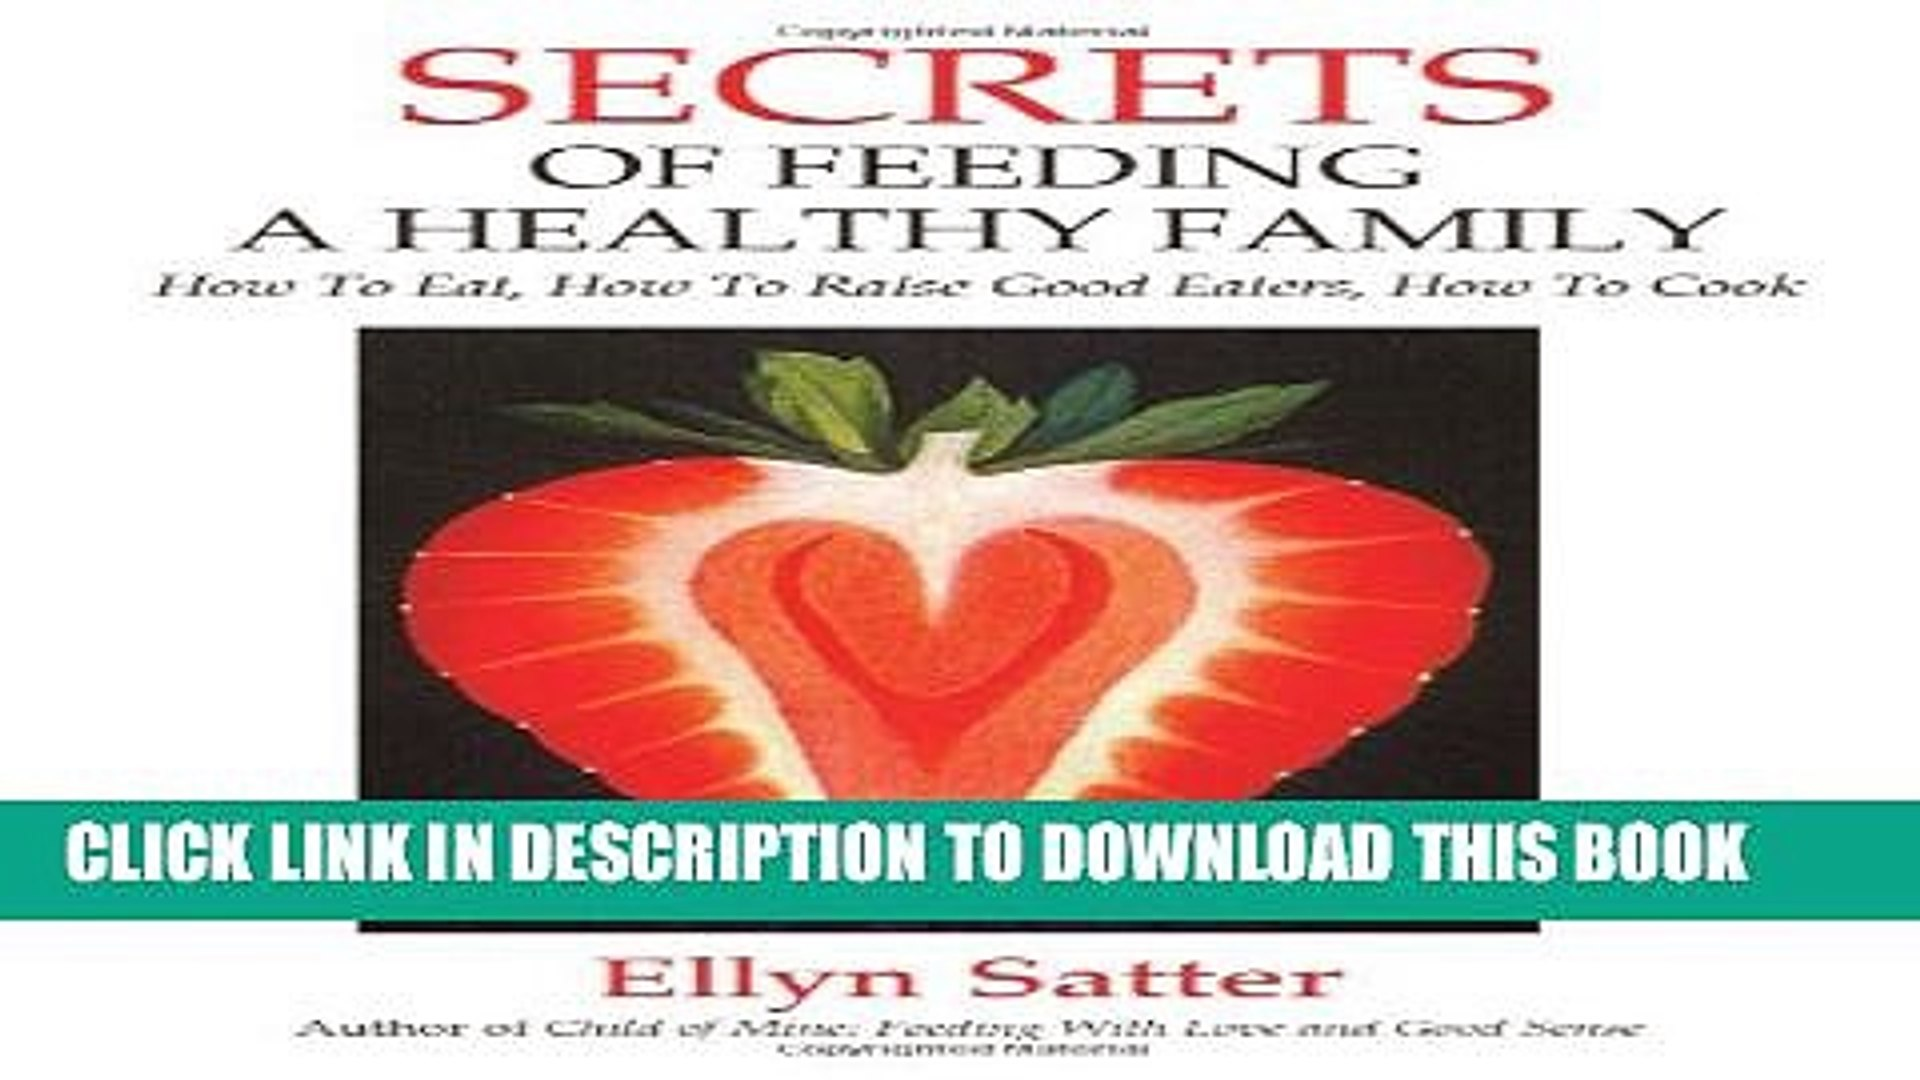 [PDF] Secrets of Feeding a Healthy Family: How to Eat, How to Raise Good Eaters, How to Cook Full